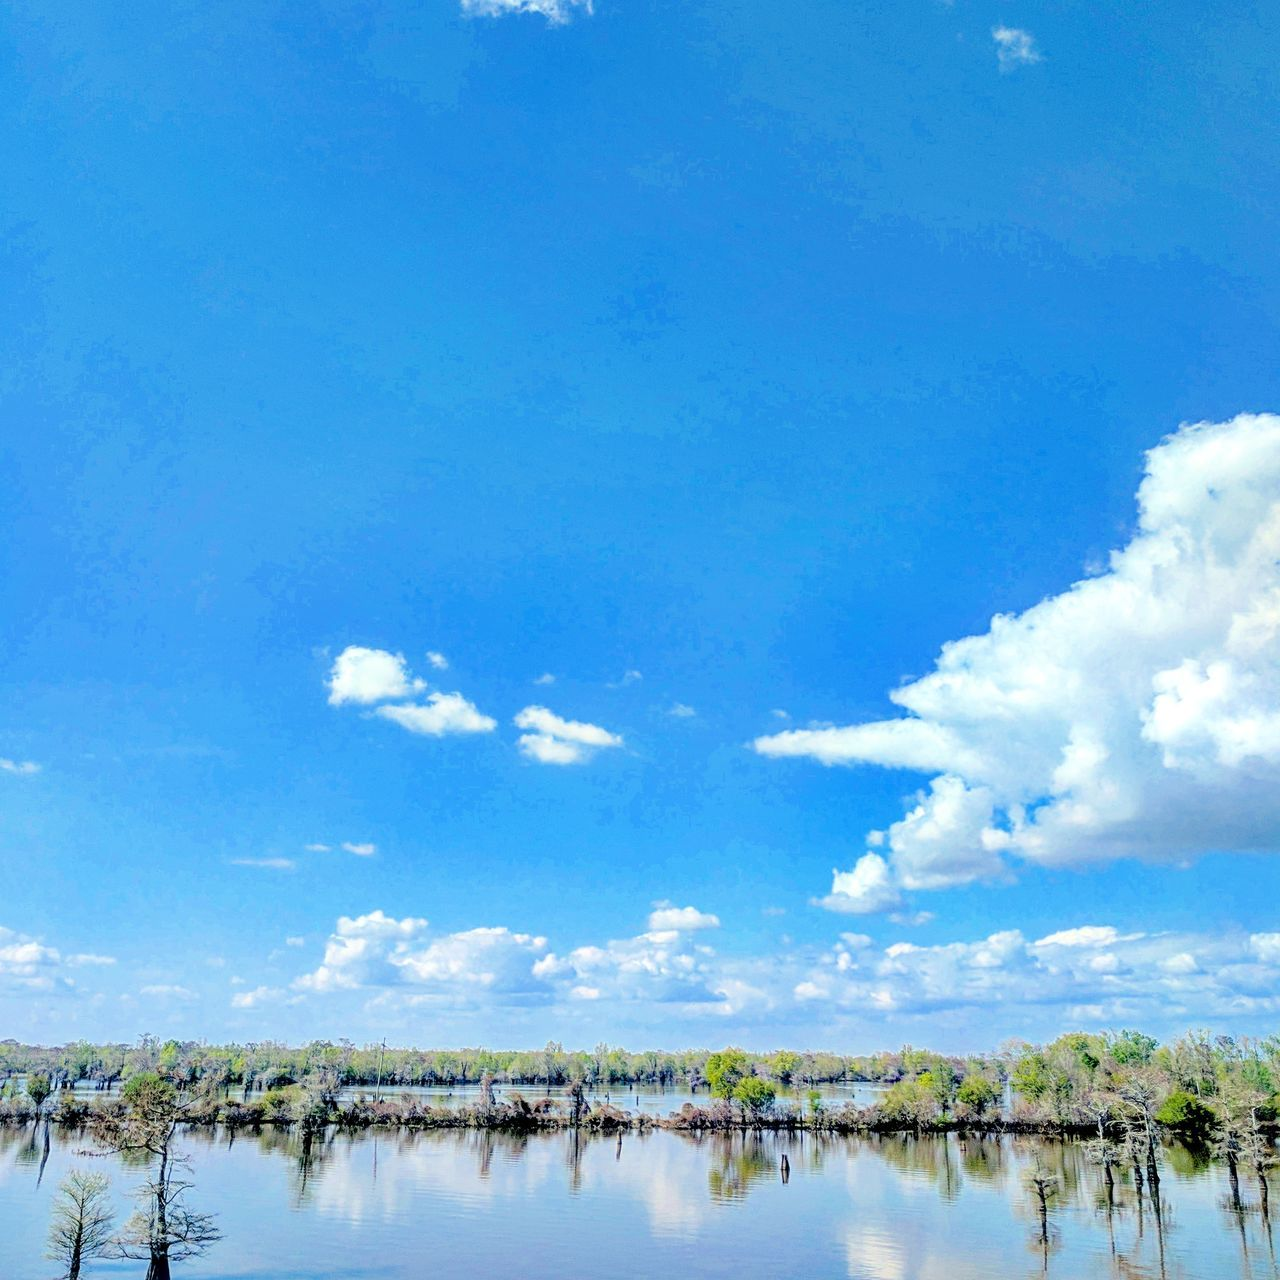 Blue Water Sky Nature Tree Day Outdoors No People Lake Beauty In Nature Cloud - Sky Agriculture Solo Women Travelers Tree Nature Bayou Bayous Of Louisianna Bayou Life Outdoors Photograpghy  Outdoor Beauty